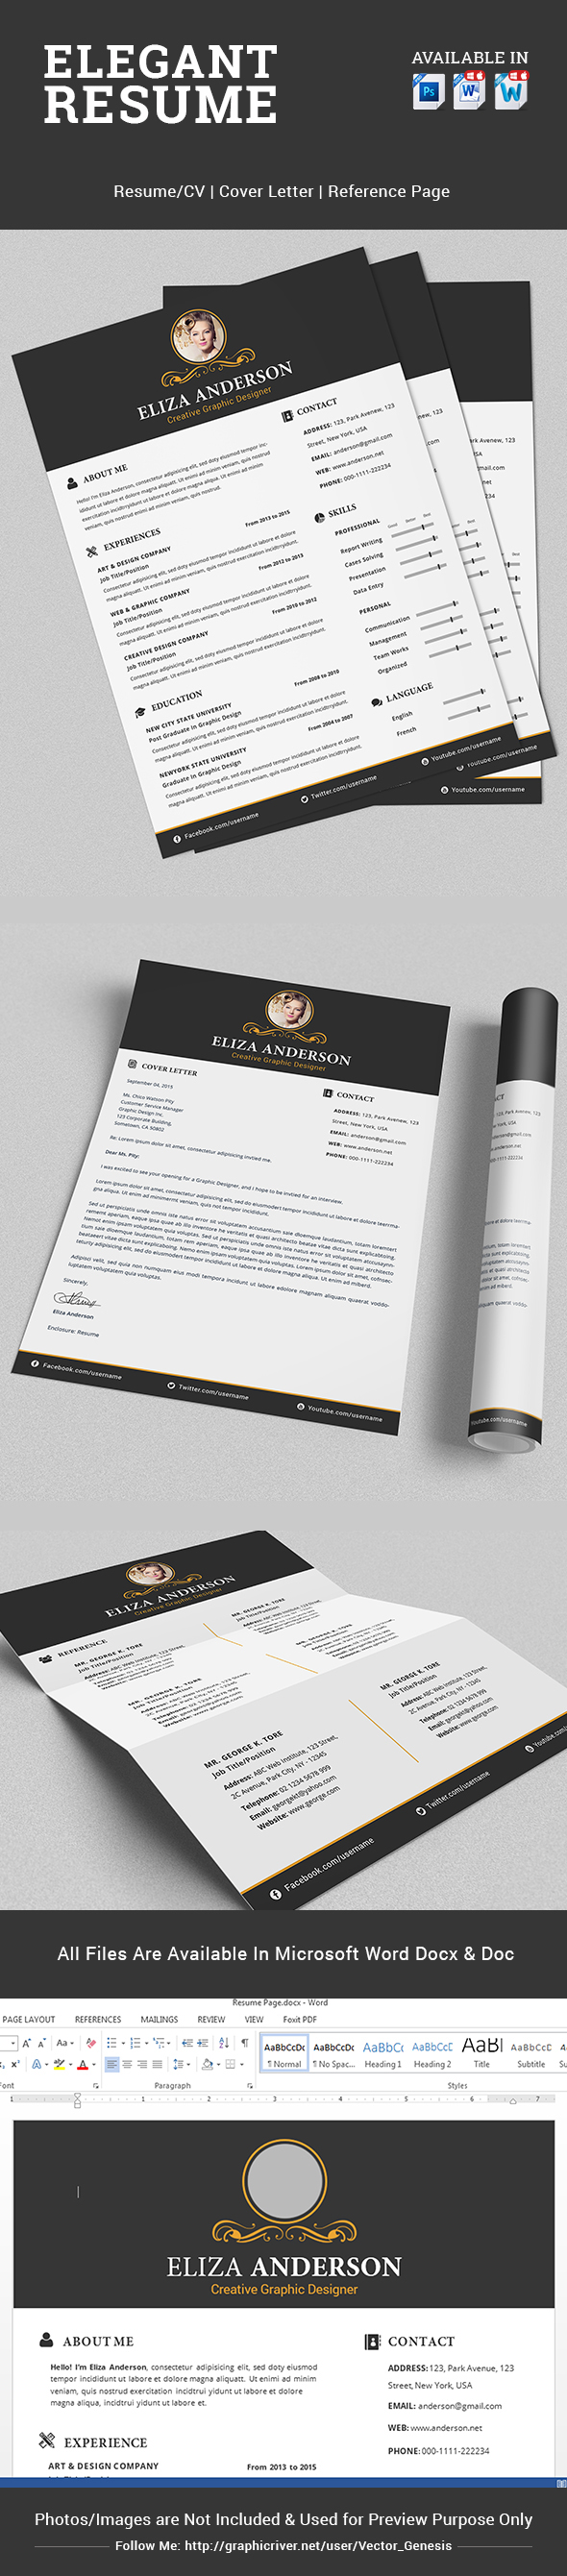 elegant resume  cv set with psd  u0026 ms word file on behance